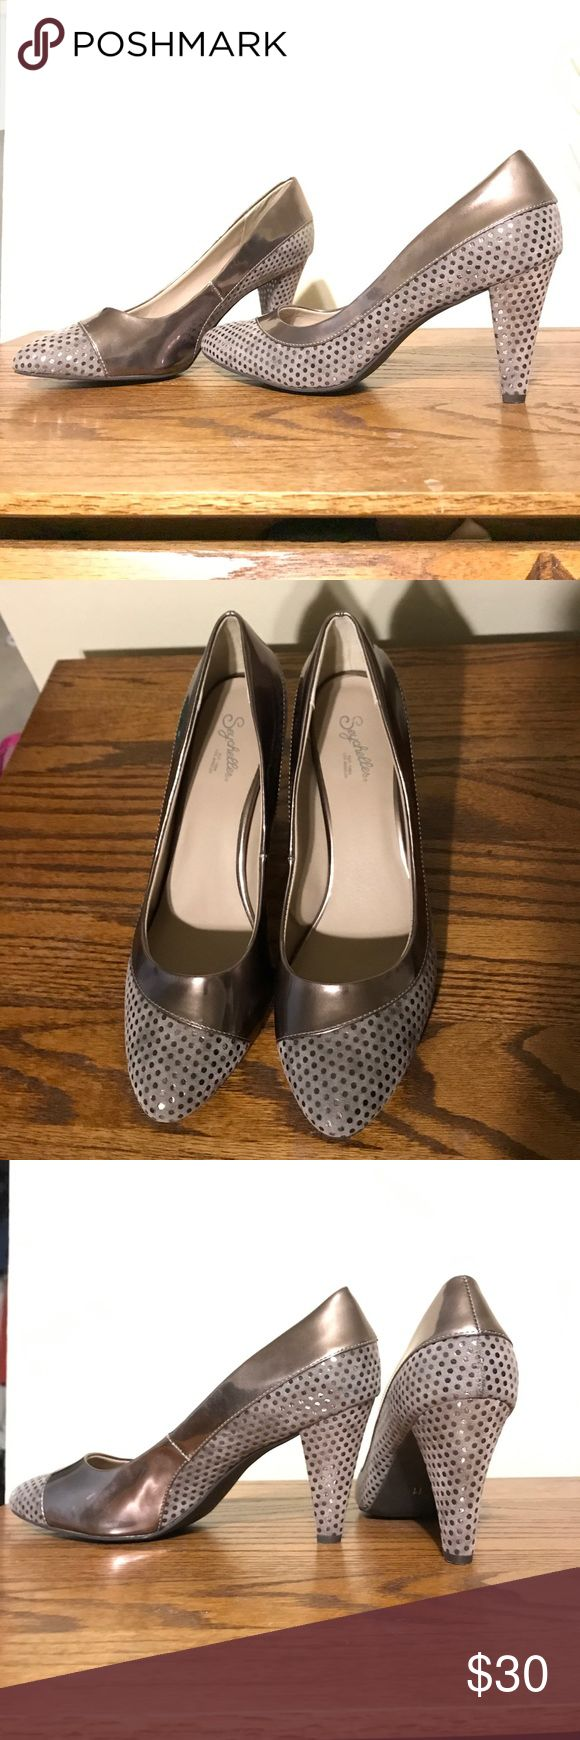 "Seychelles-NWOT polka dot heels-women's size 11 New without box! Seychelles ""Tell Me a Story"" Retro, throwback 1940s / 1950s style pumps Round toe pink metallic suede and pink metallic leather Polka dots Women's  Size 11. Please see photos and ask any questions you'd like! Seychelles Shoes Heels"